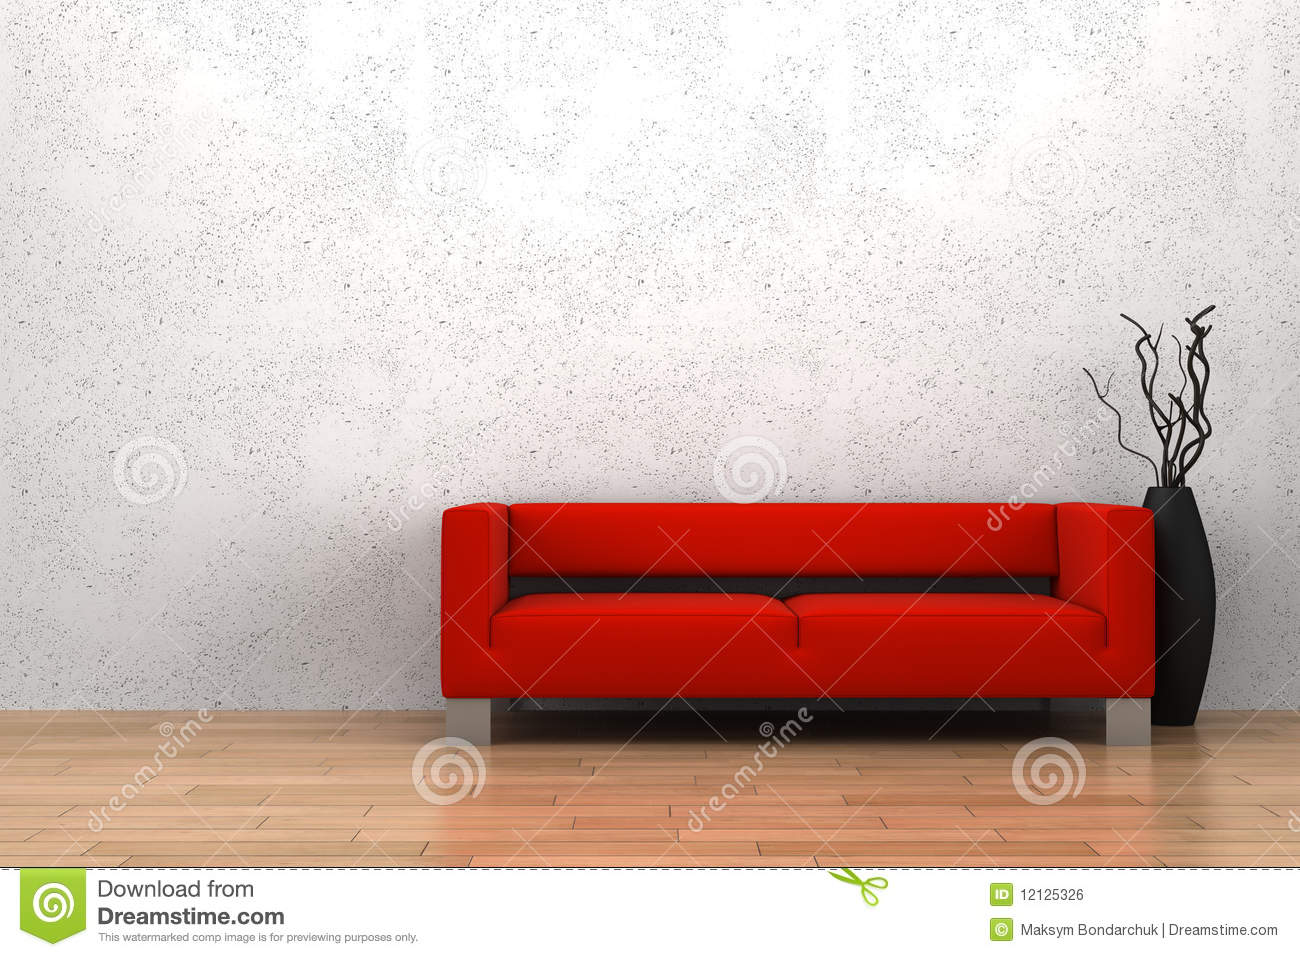 Red Sofa And Vase In Front White Wall Royalty Free Stock Image Image